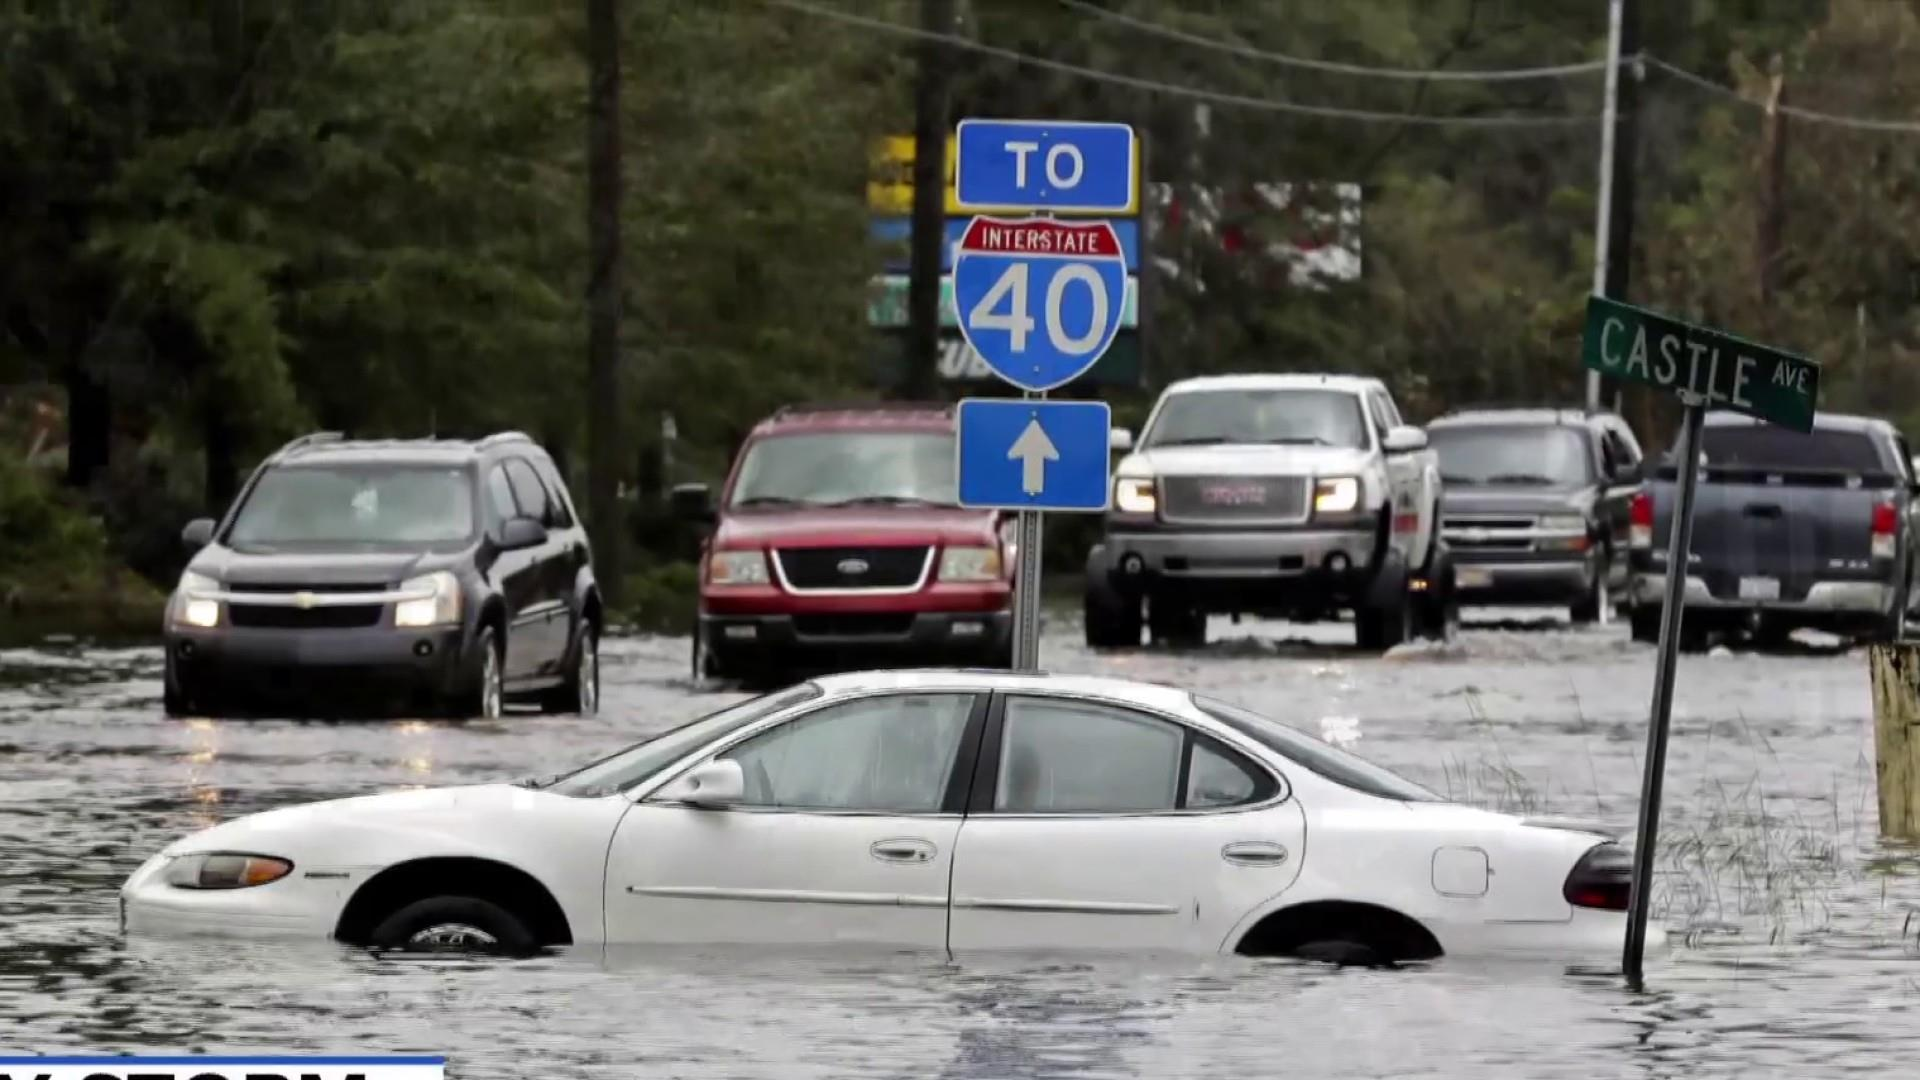 Life after Florence: Recovery efforts in a hard-hit town